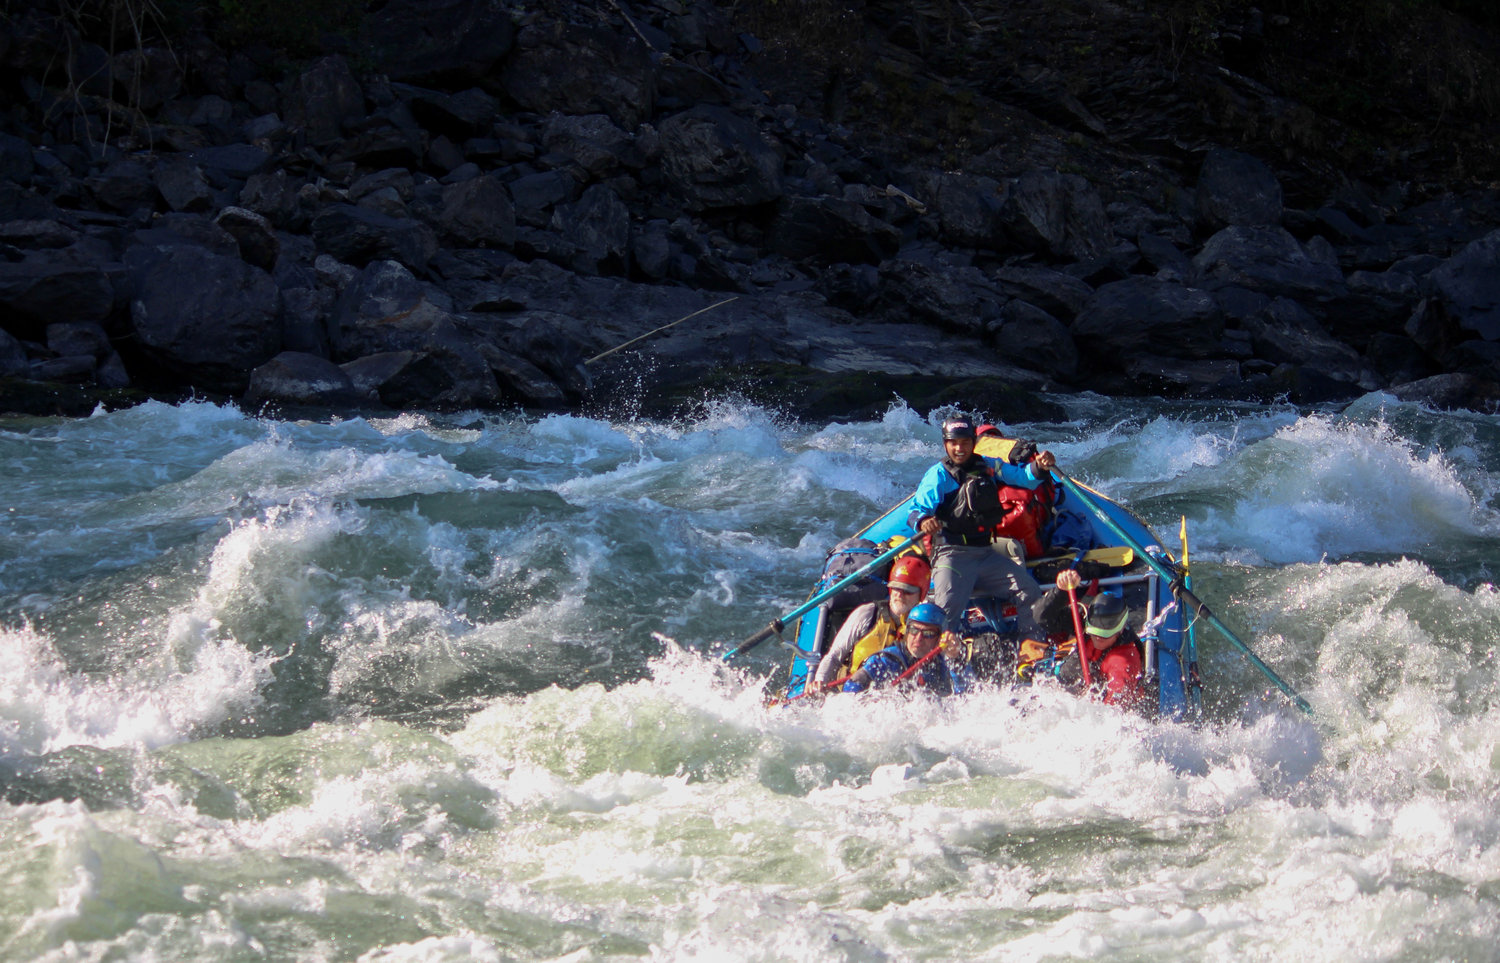 Rafting at Kameng River